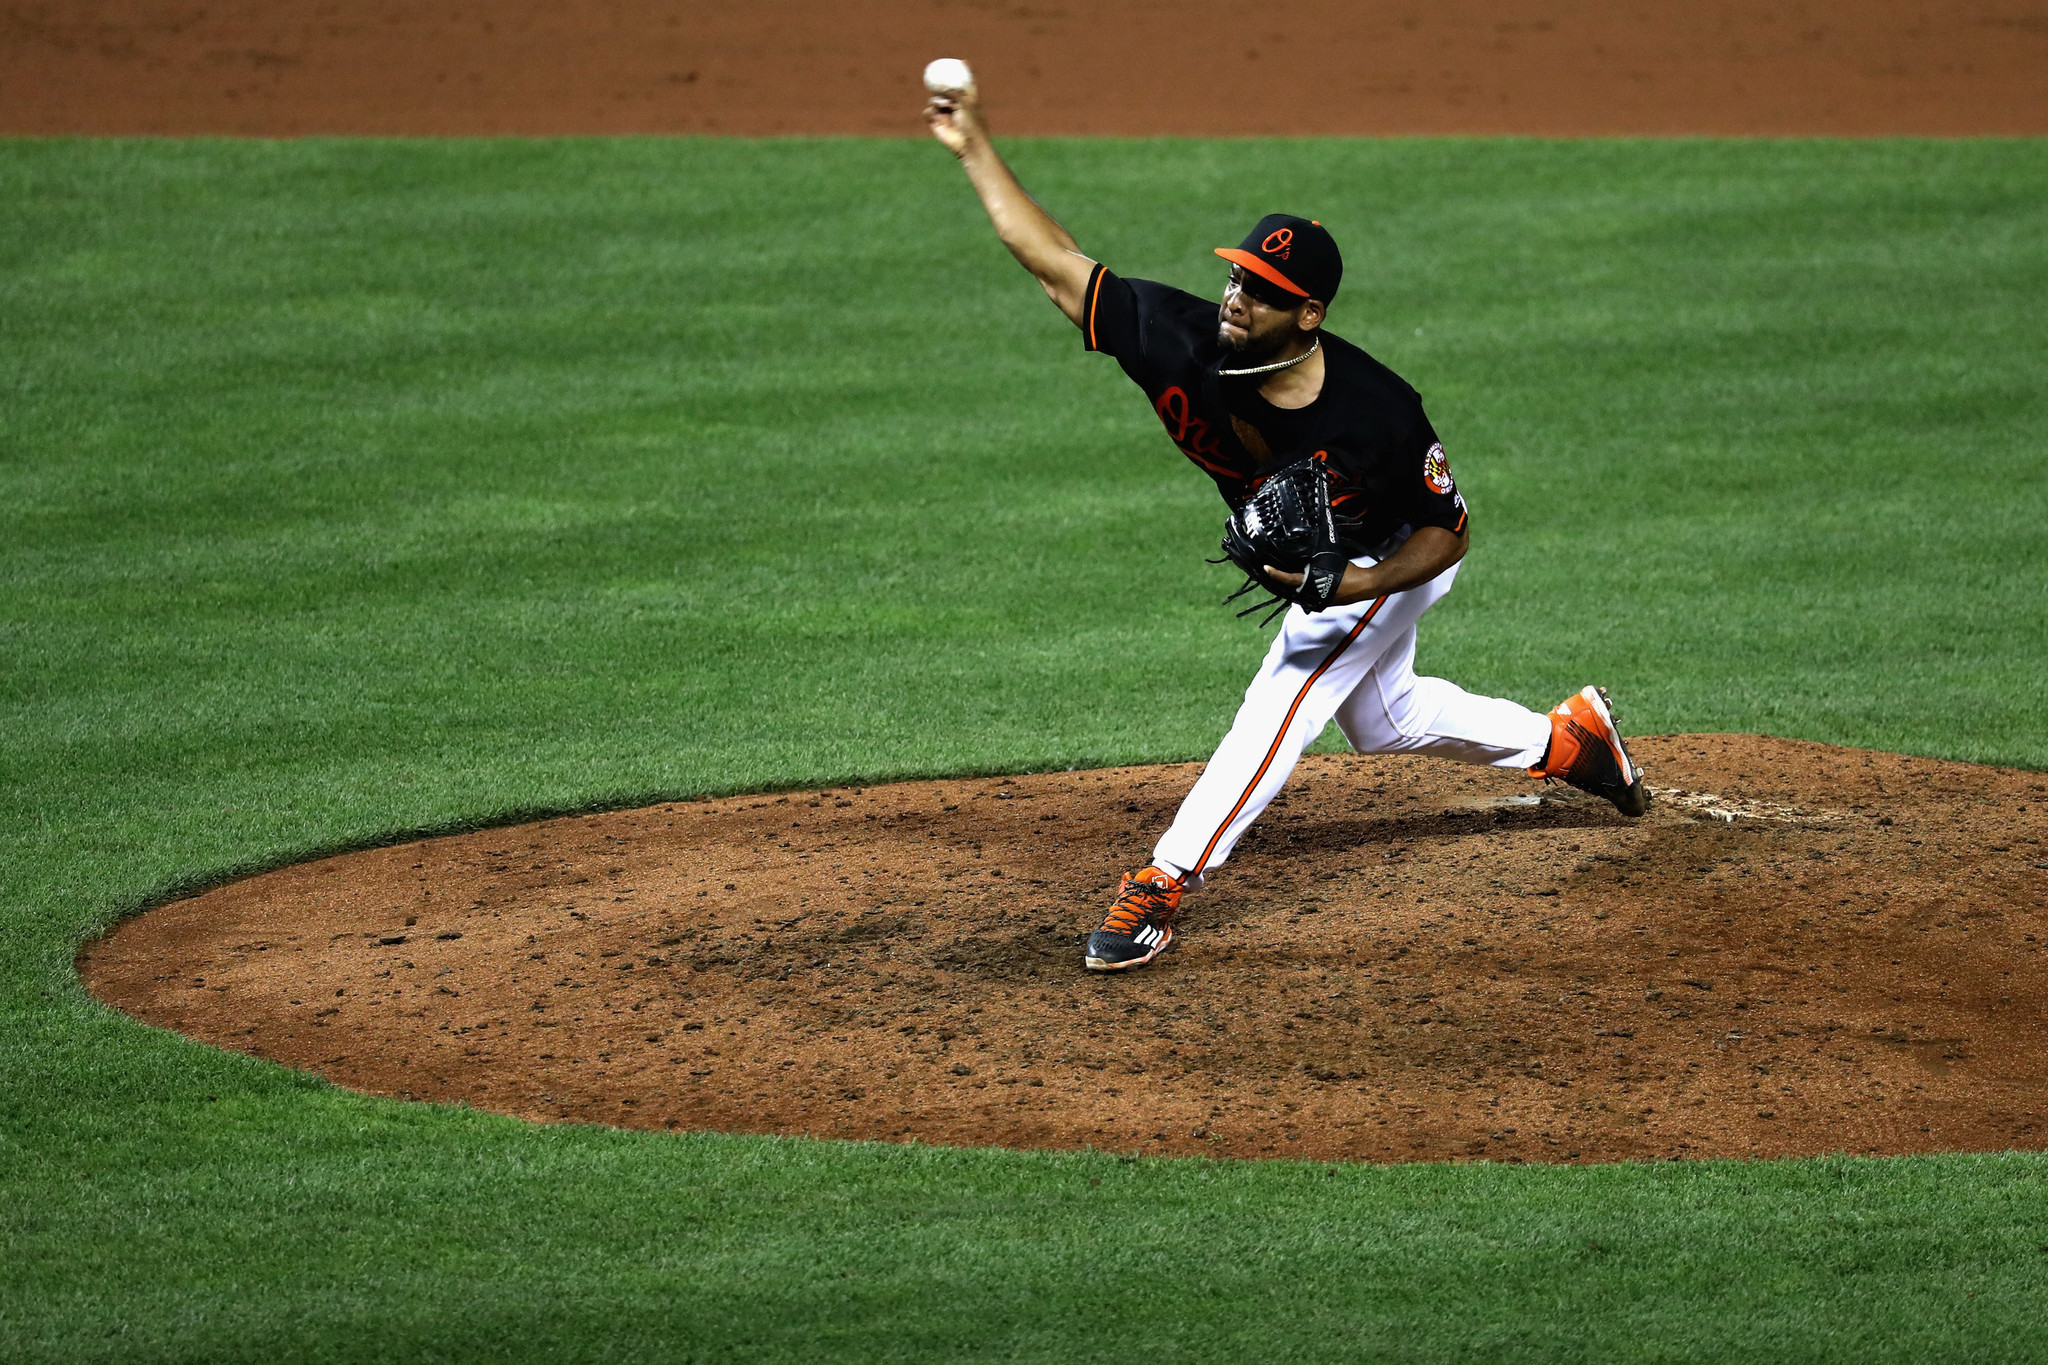 Bal-as-orioles-search-for-starting-pitchers-odrisamer-despaigne-continues-to-impress-out-of-bullpen-20160722